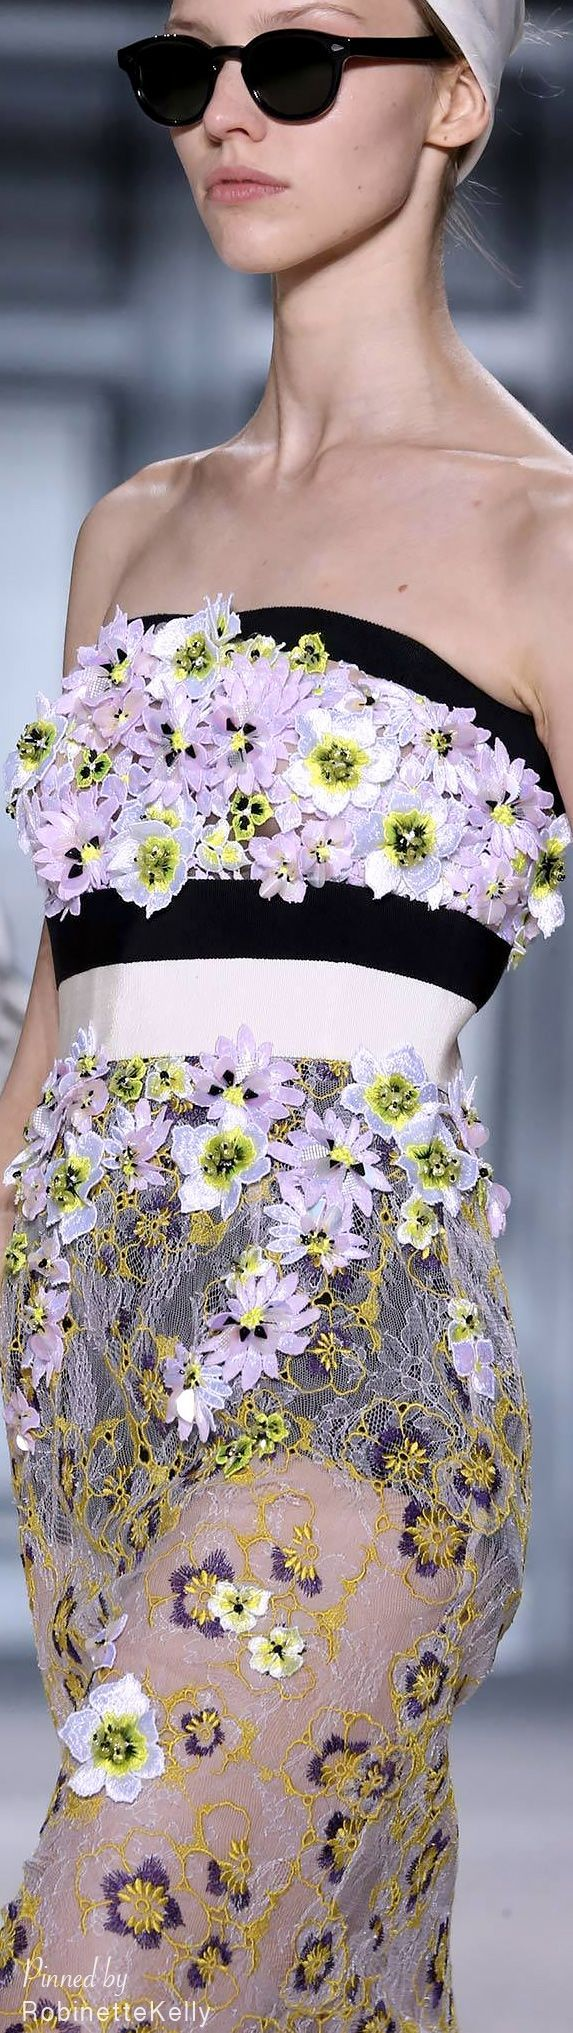 evening flower - Giambattista Valli